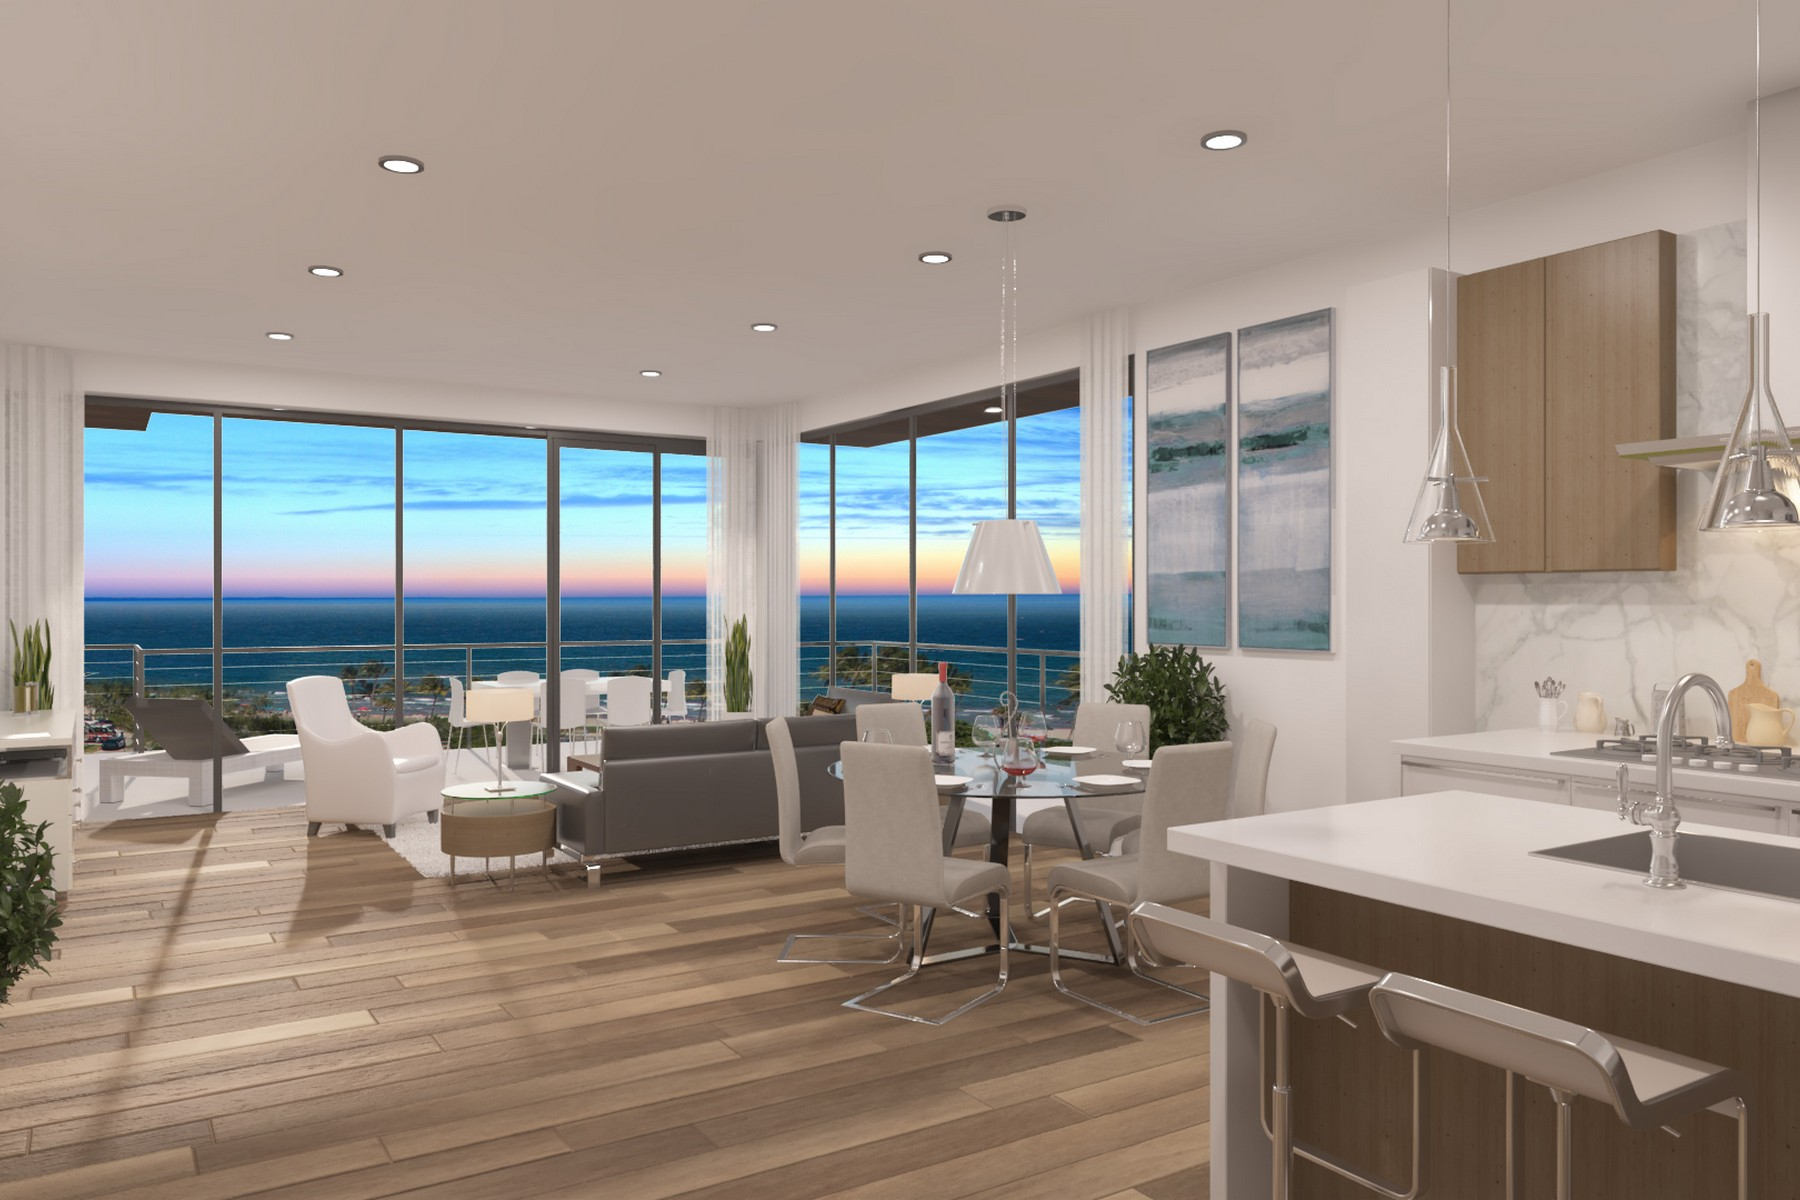 Condominio per Vendita alle ore 120 S Ocean Dr , 4 South, Deerfield Beach, FL 3344 120 S Ocean Dr 4 South Deerfield Beach, Florida 33441 Stati Uniti